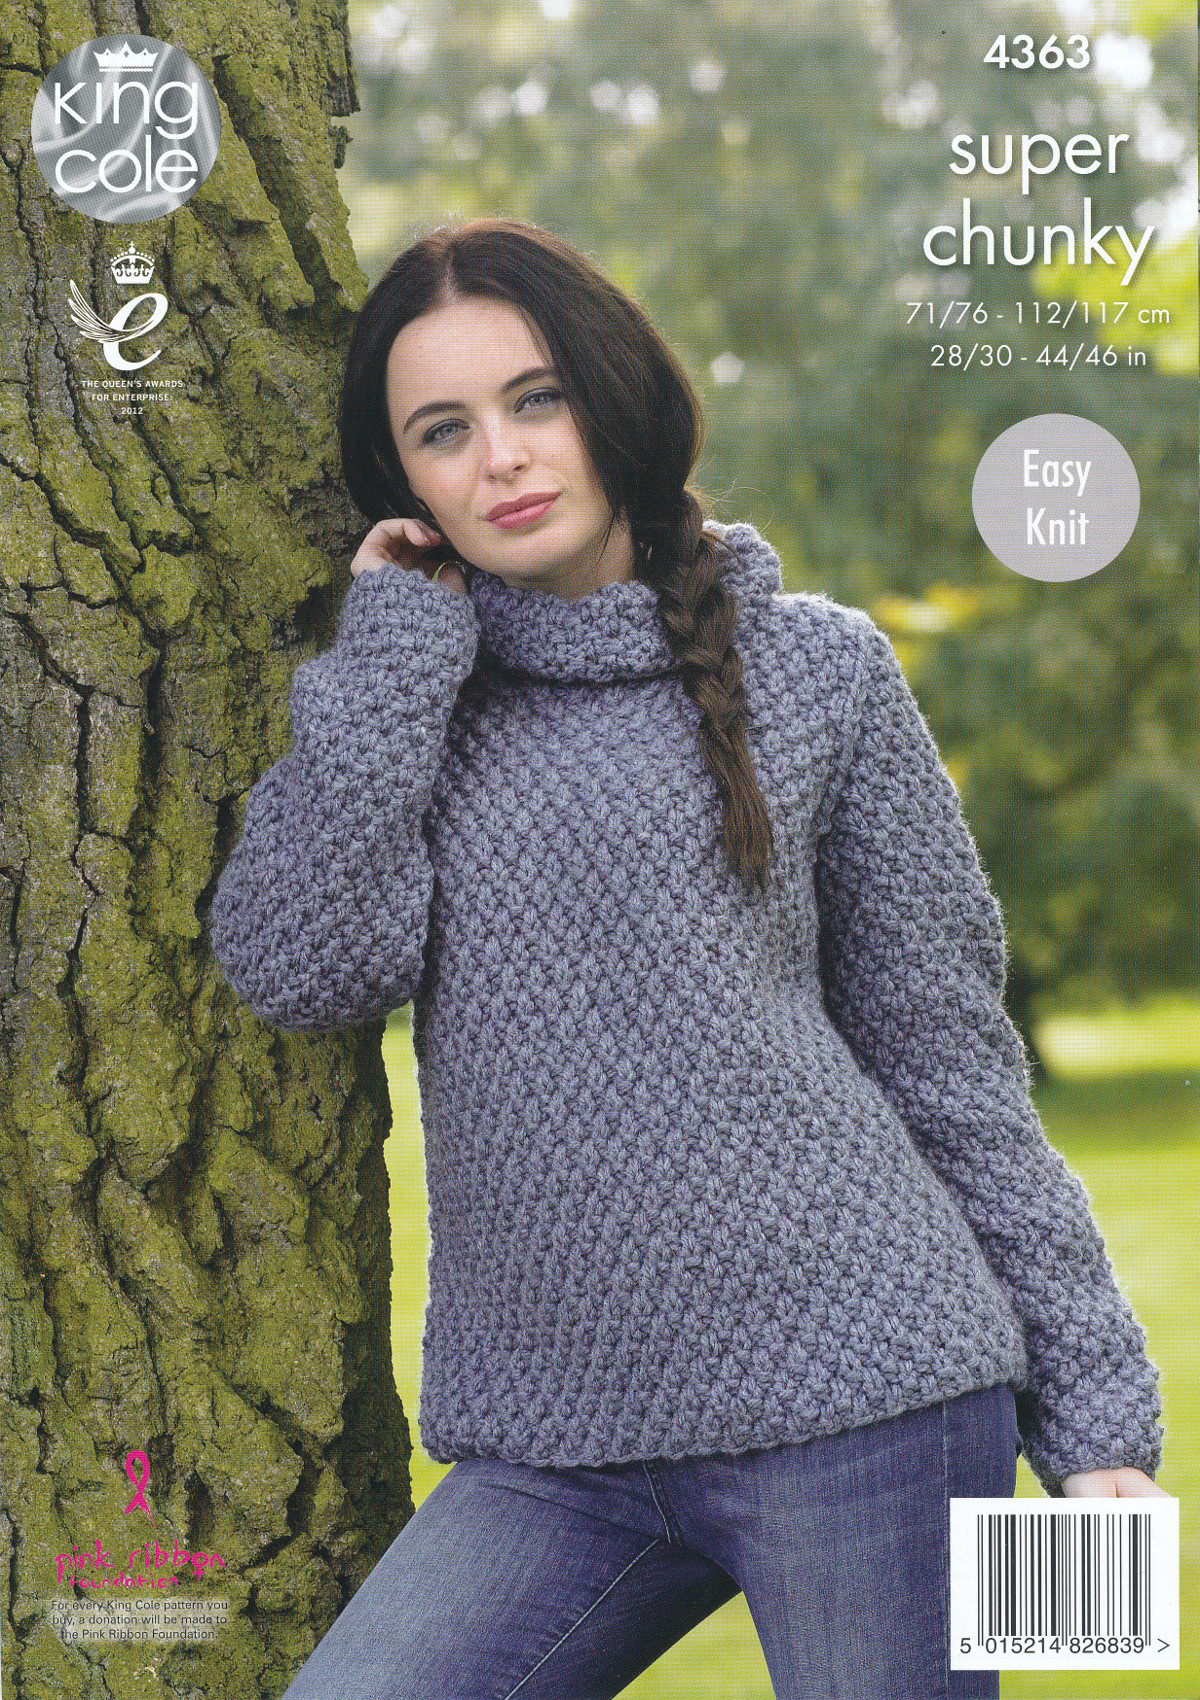 Chunky Knit Jumper Pattern Free : Ladies Super Chunky Knitting Pattern King Cole Easy Knit Sweater & Jacket...